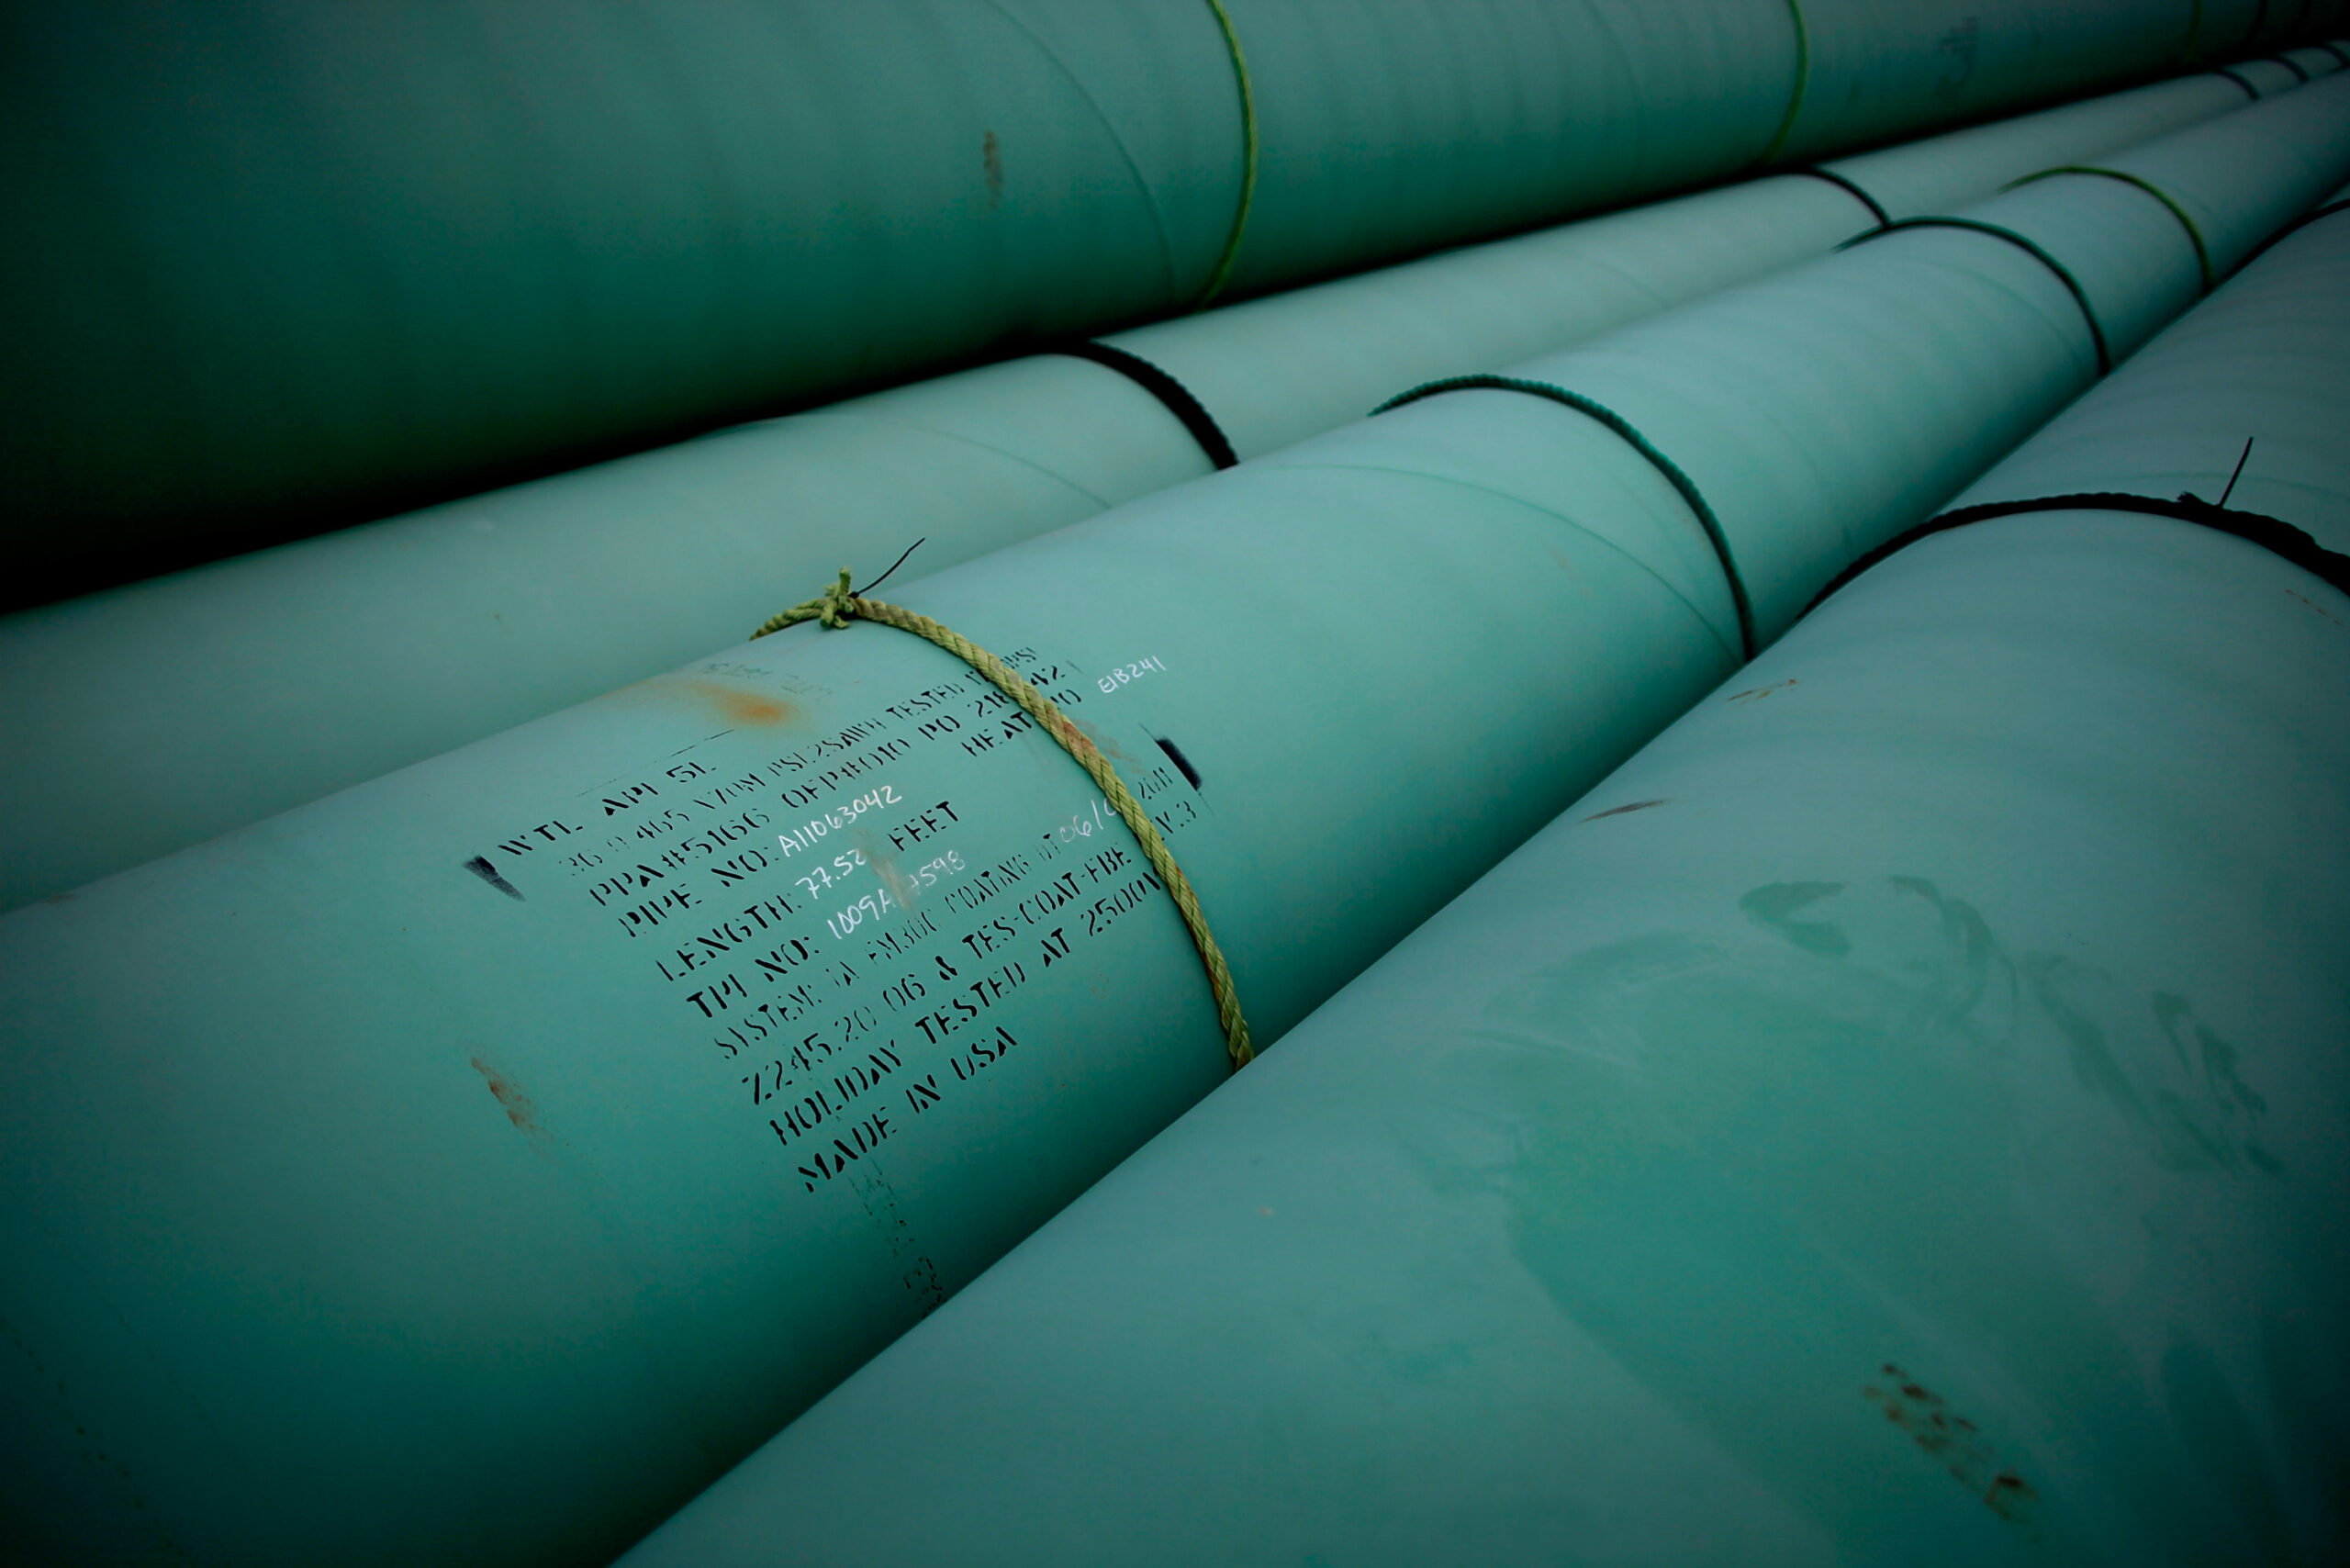 Pipe is stacked at the southern site of the Keystone XL pipeline on March 22, 2012 in Cushing, Oklahoma. Credit: Tom Pennington/Getty Images